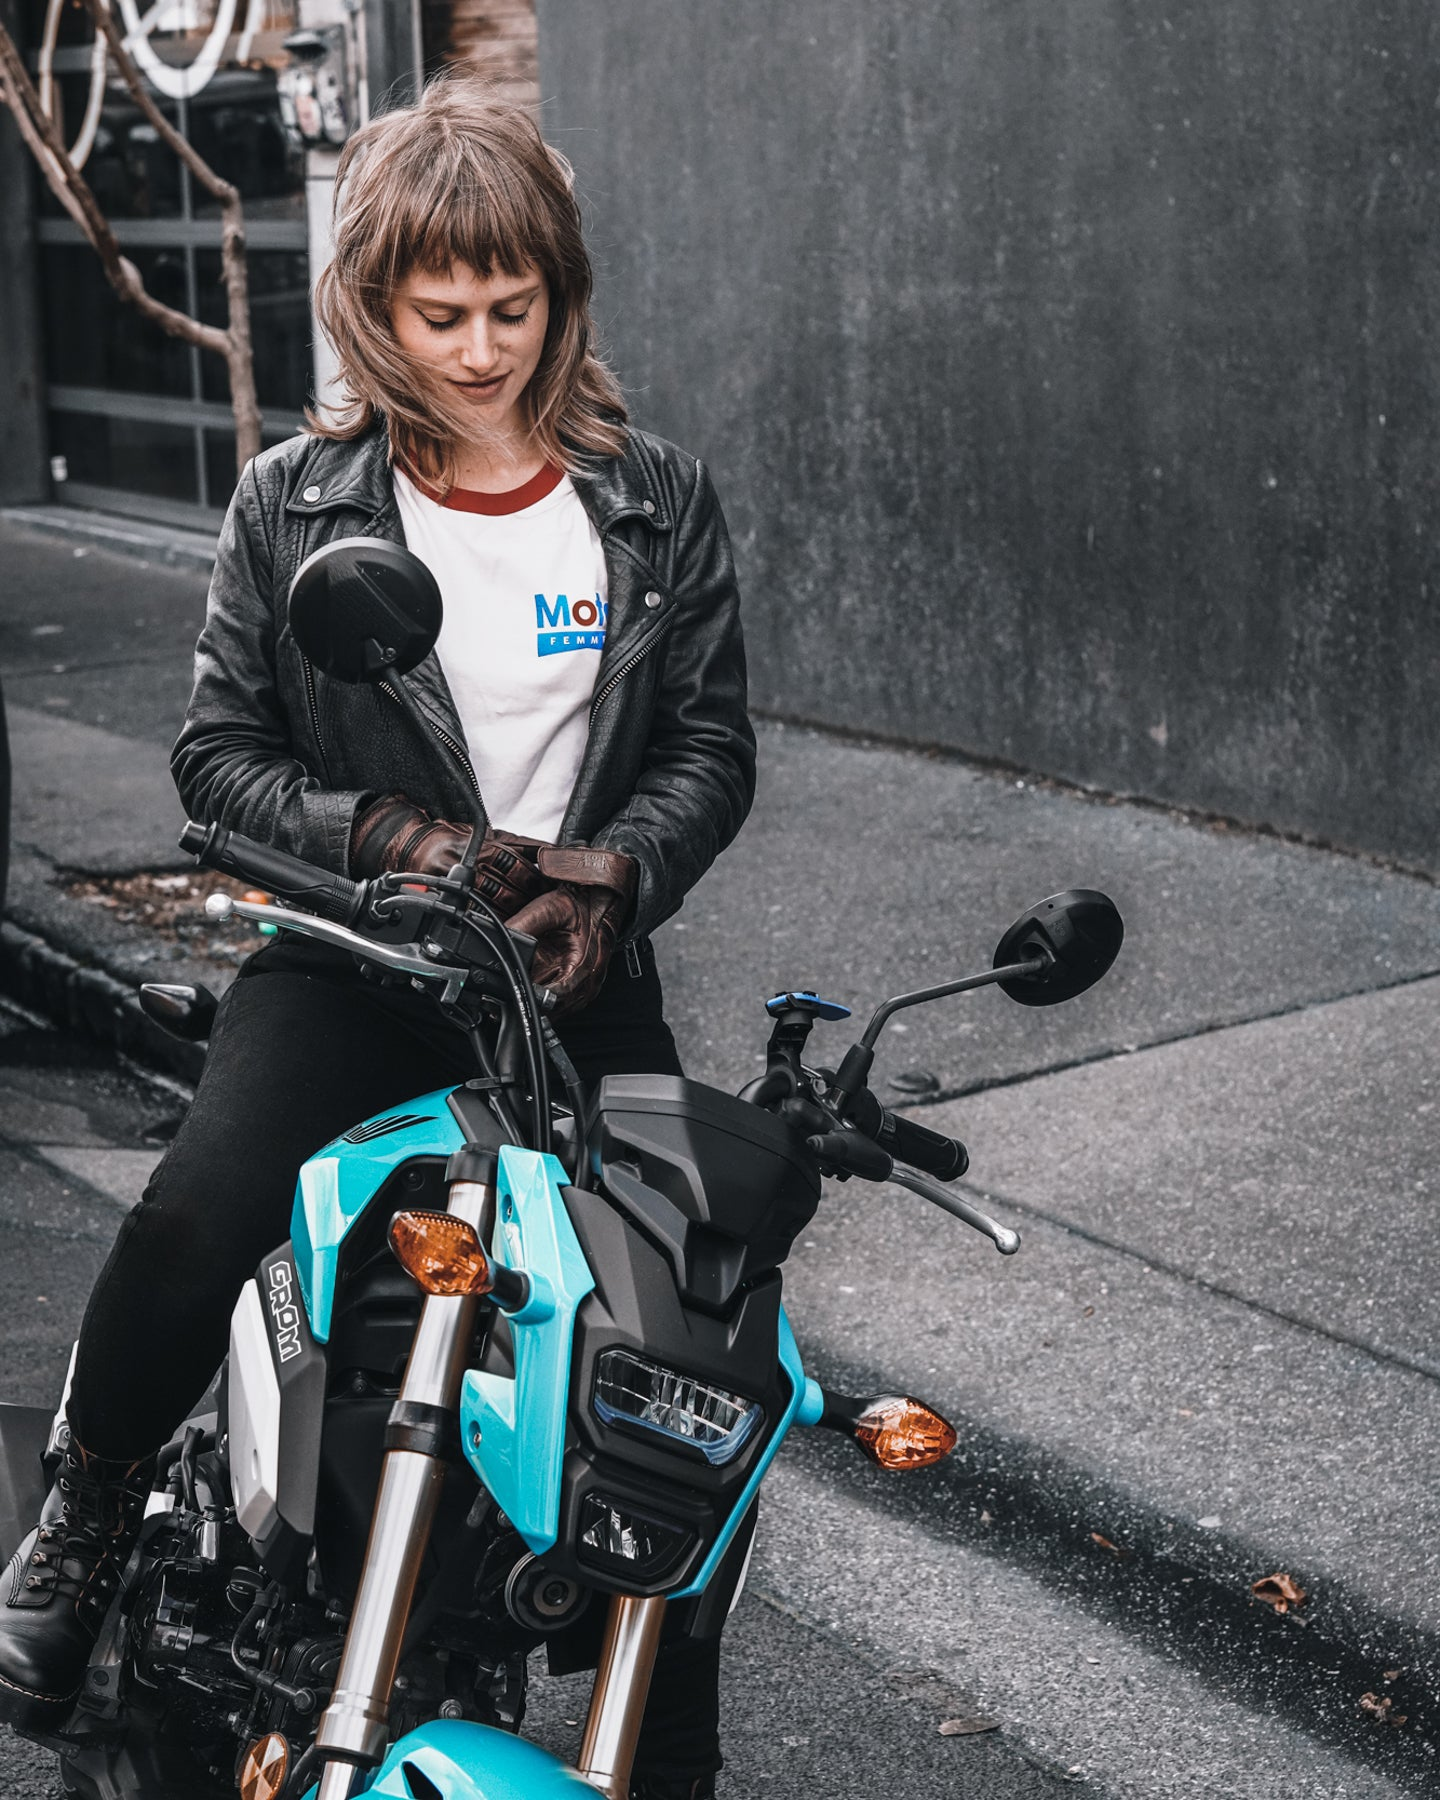 Jo and her Honda Grom in Collingwood, Melbourne